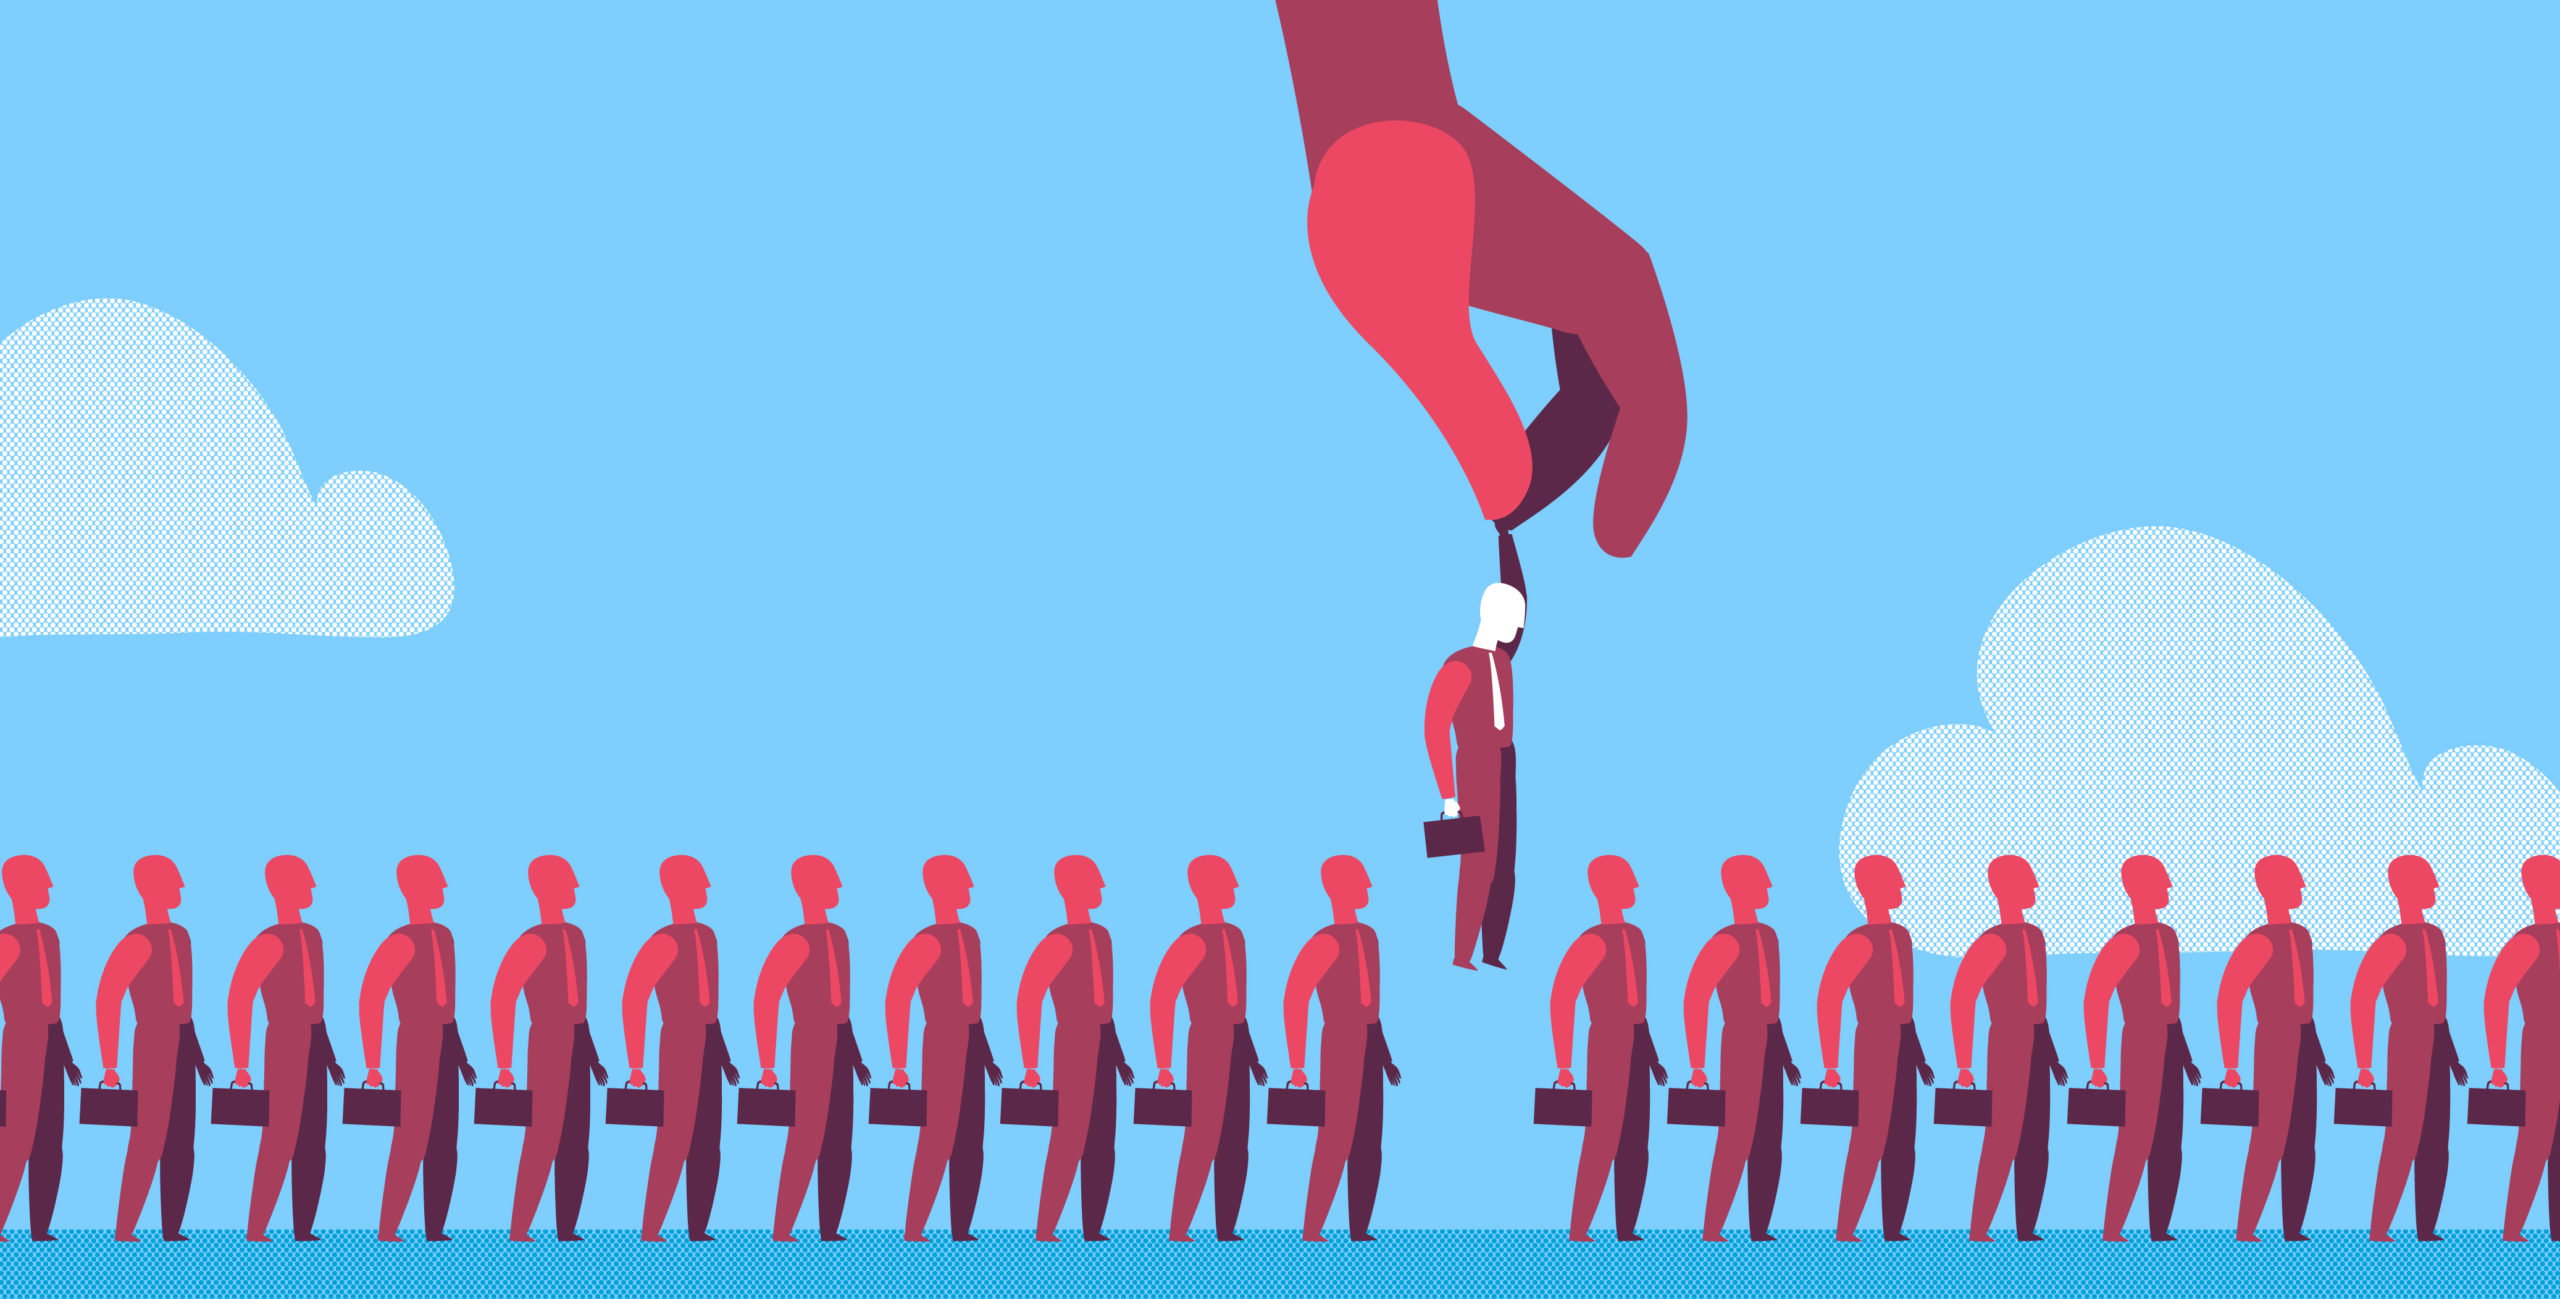 Graphic of a line of business people with a giant hand lifting one out of the line.